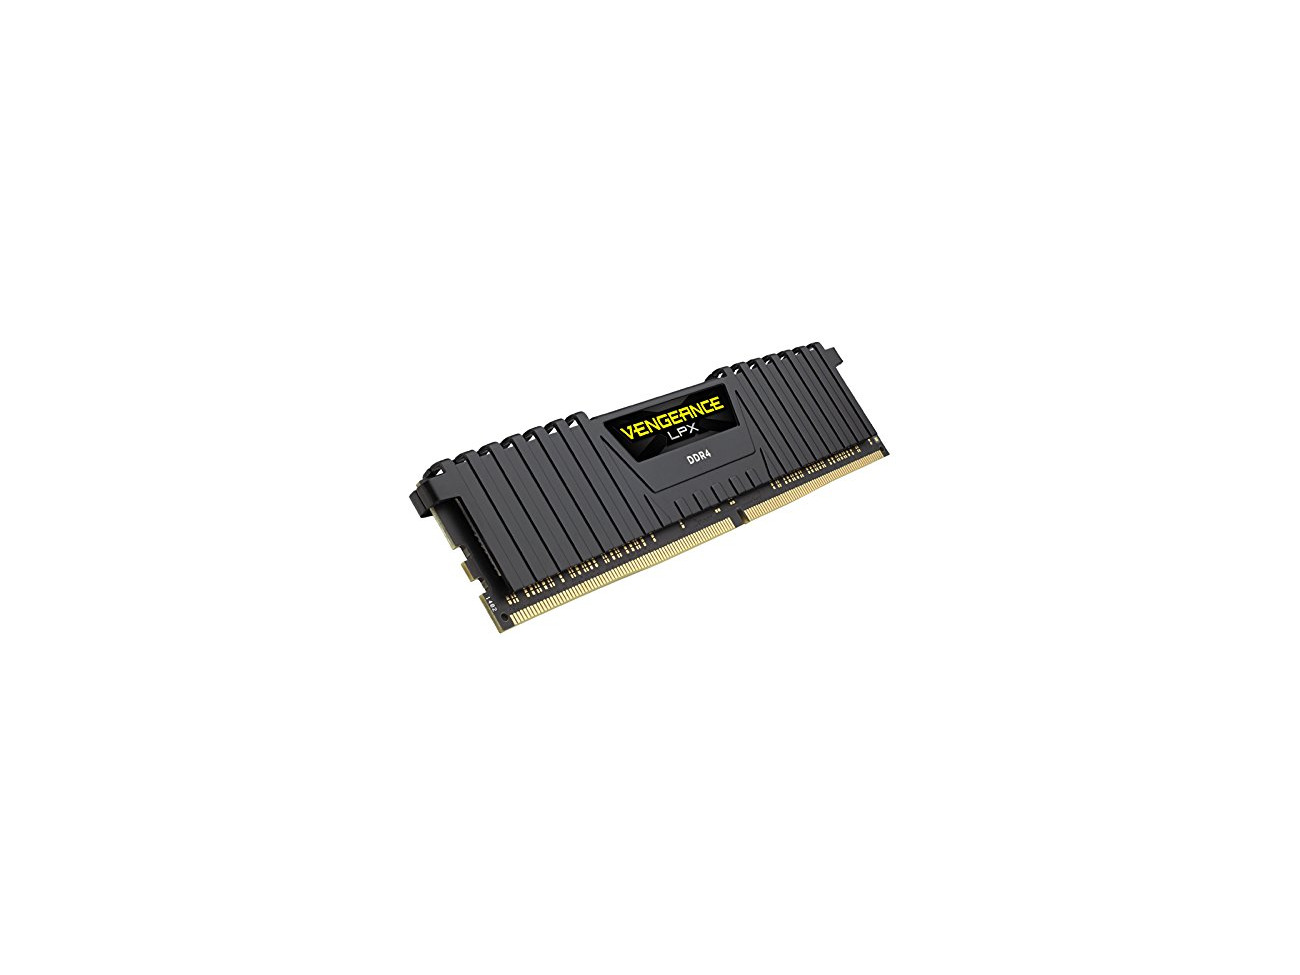 Buy Corsair CMK32GX4M2Z2400C16 Vengeance LPX 32 GB (2 x 16